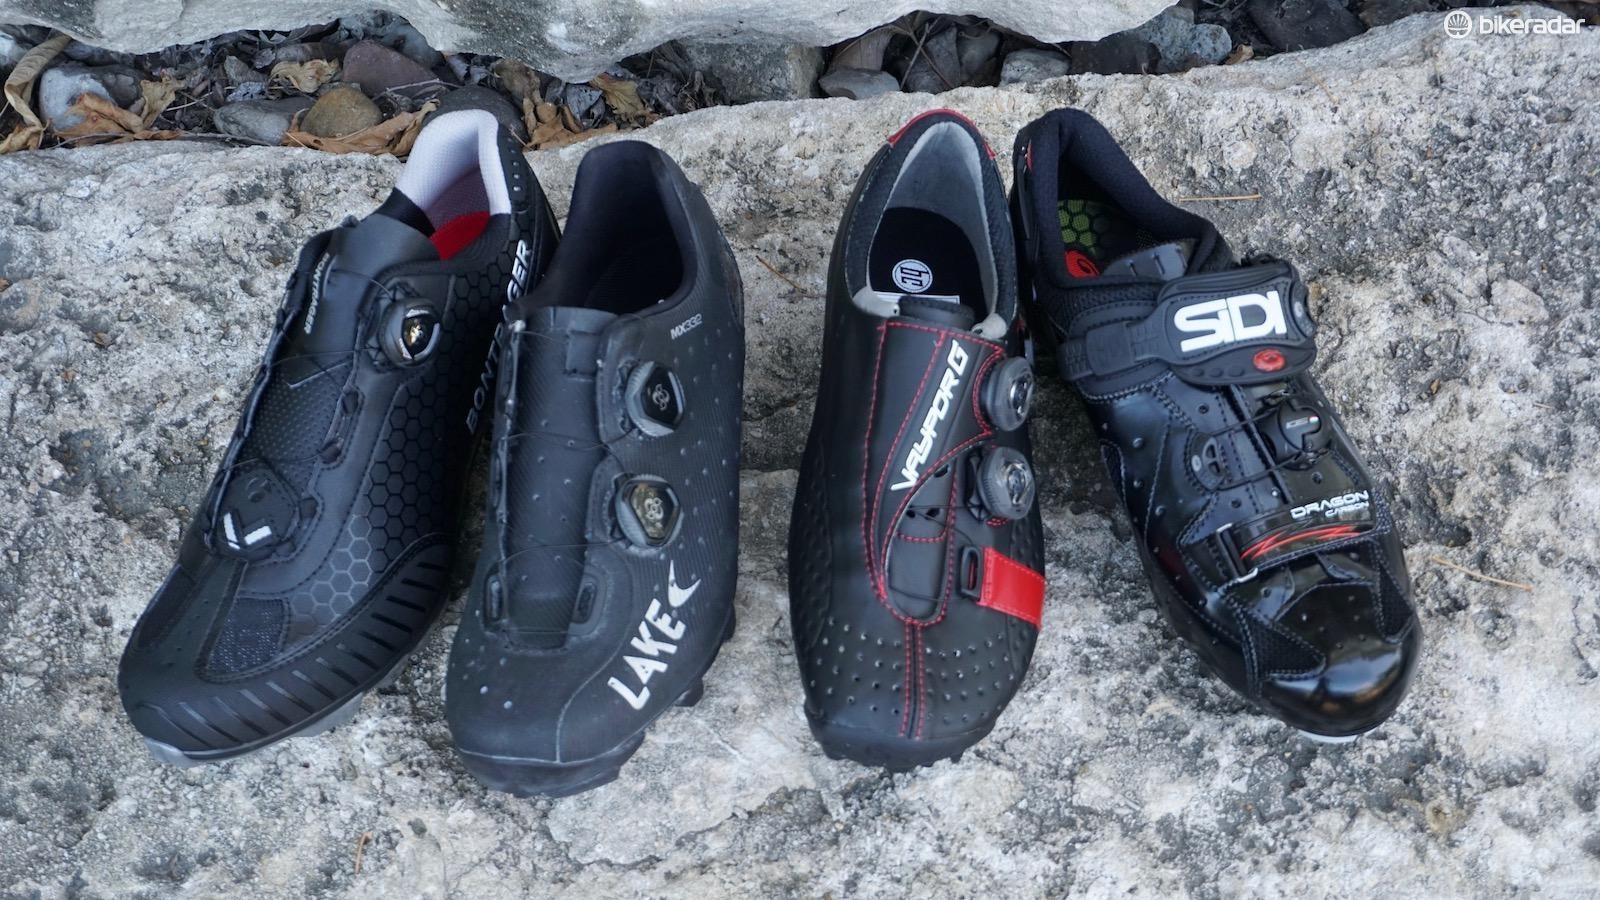 9a890cf60bcc The Bontrager Foray and Sidi Dragon 4 are better for high-volume feet — Lake